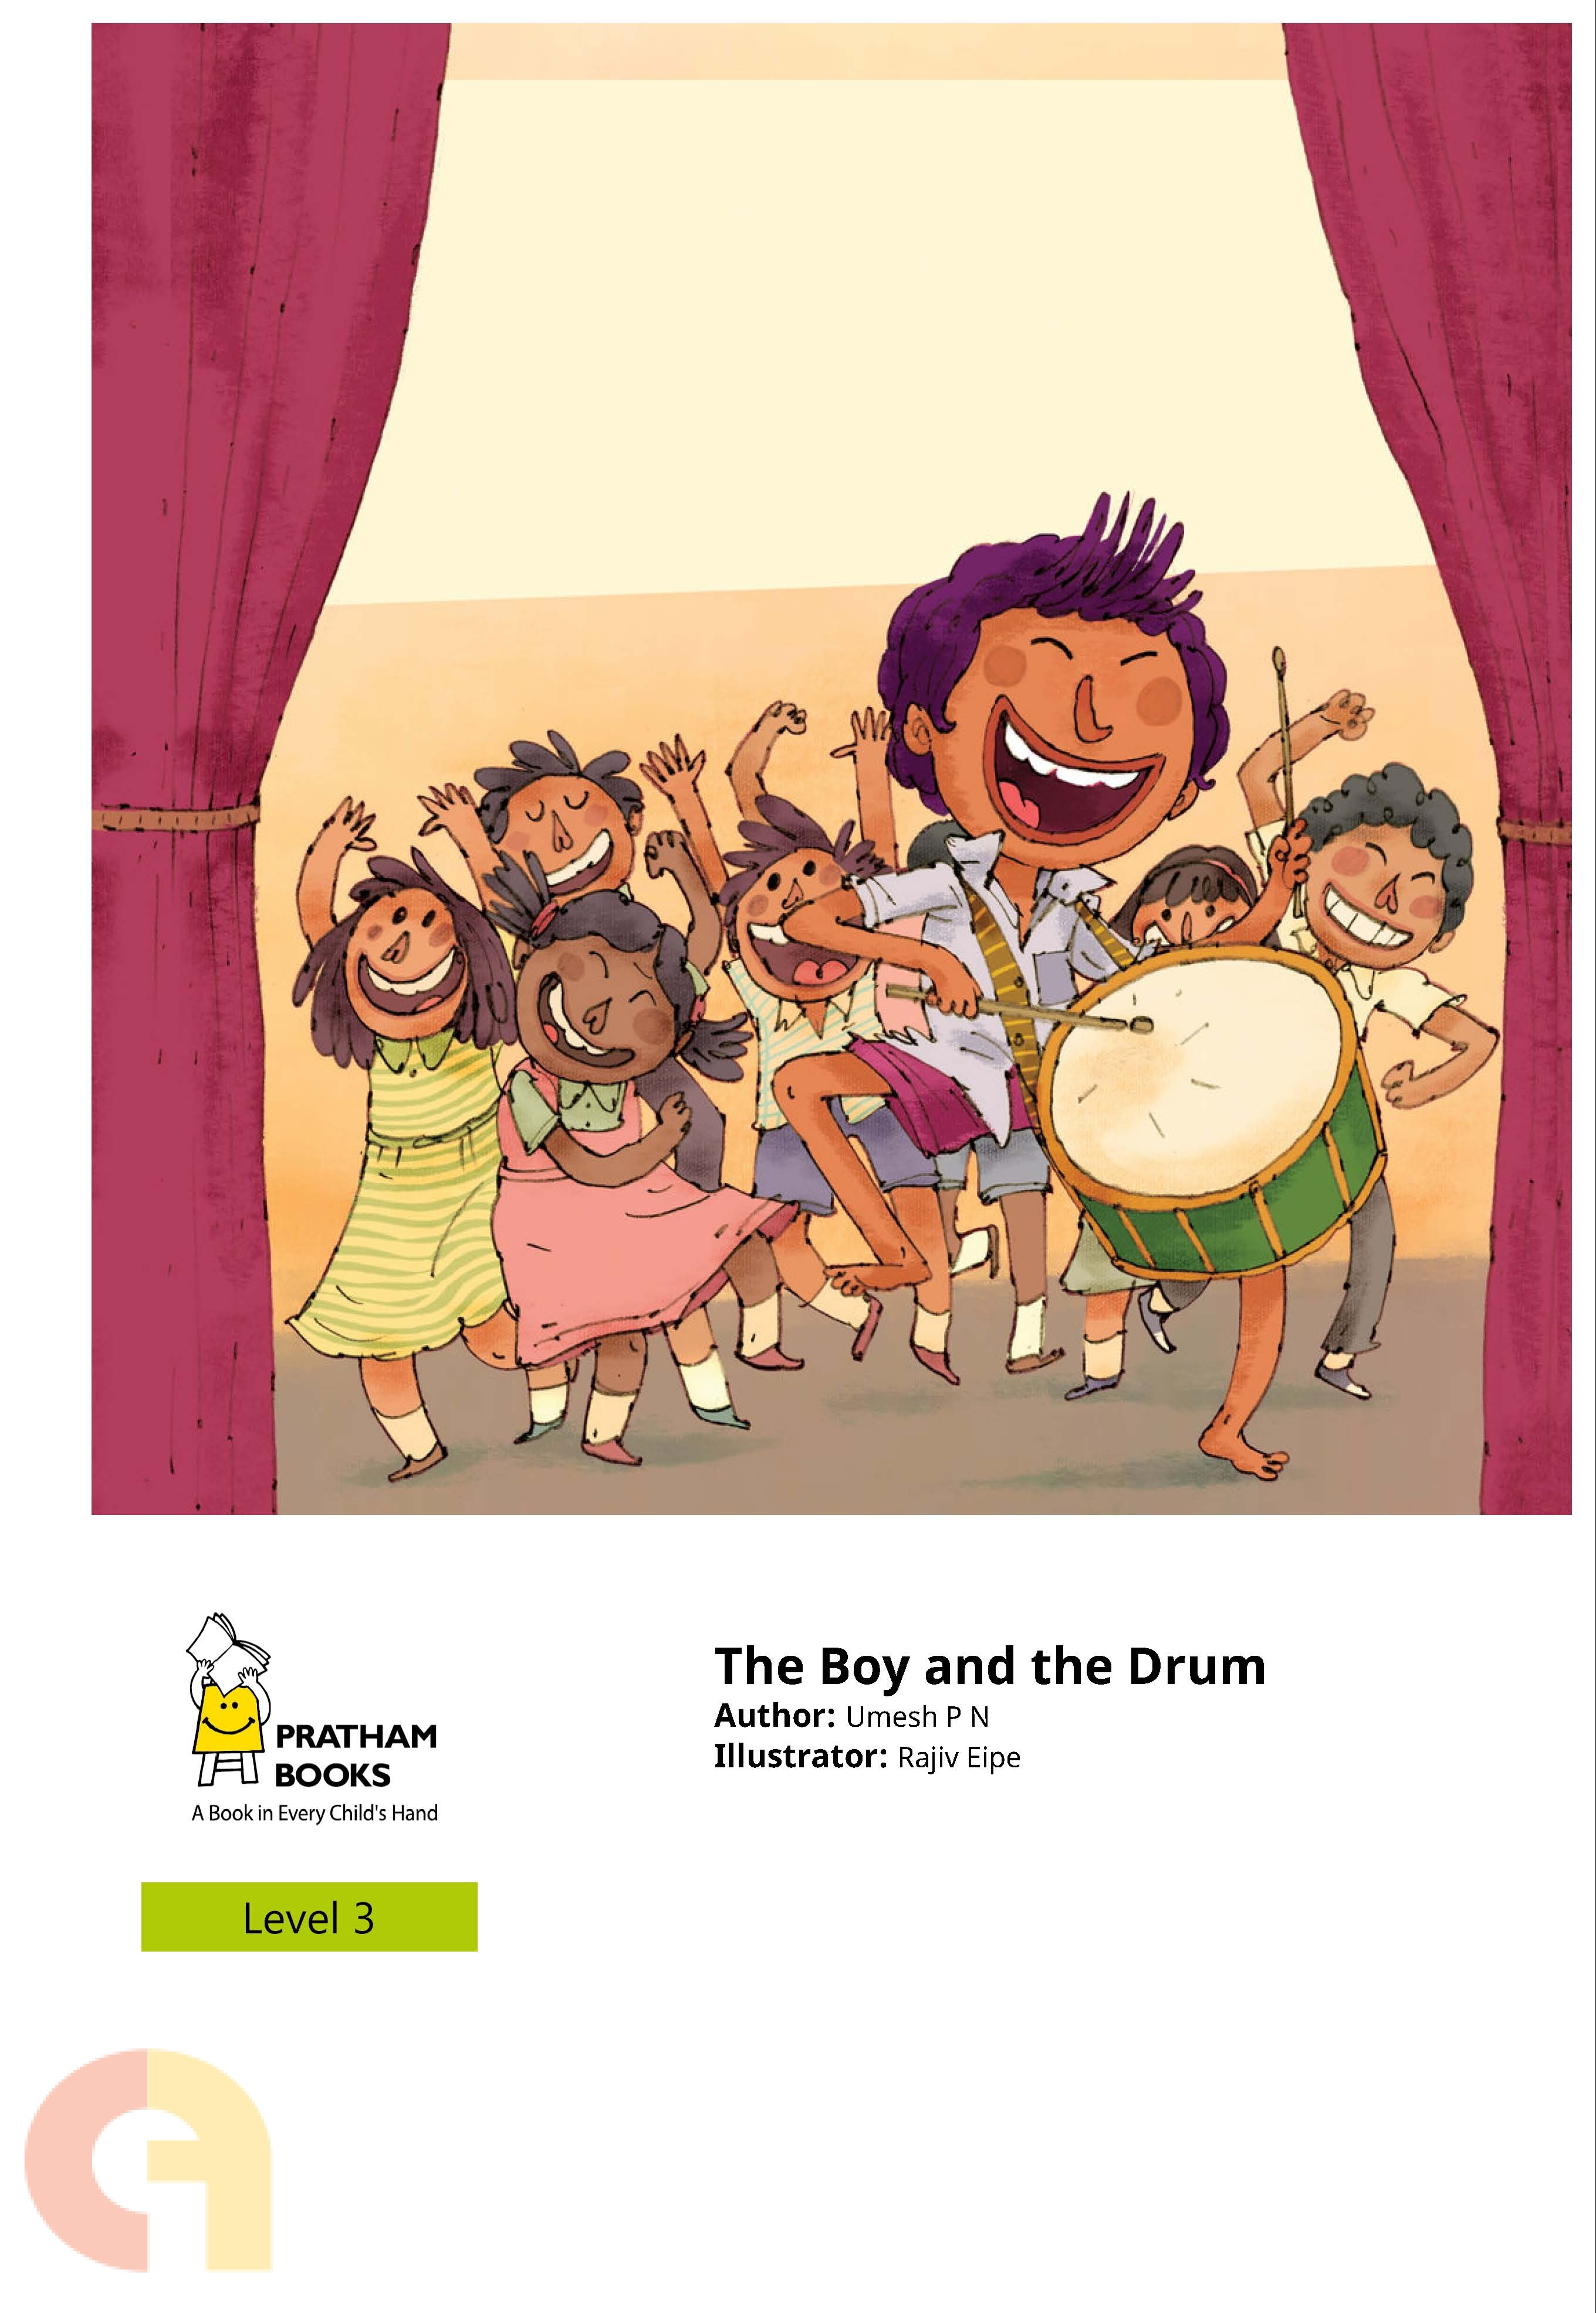 The Boy and the Drum - Level 3 - Pratham